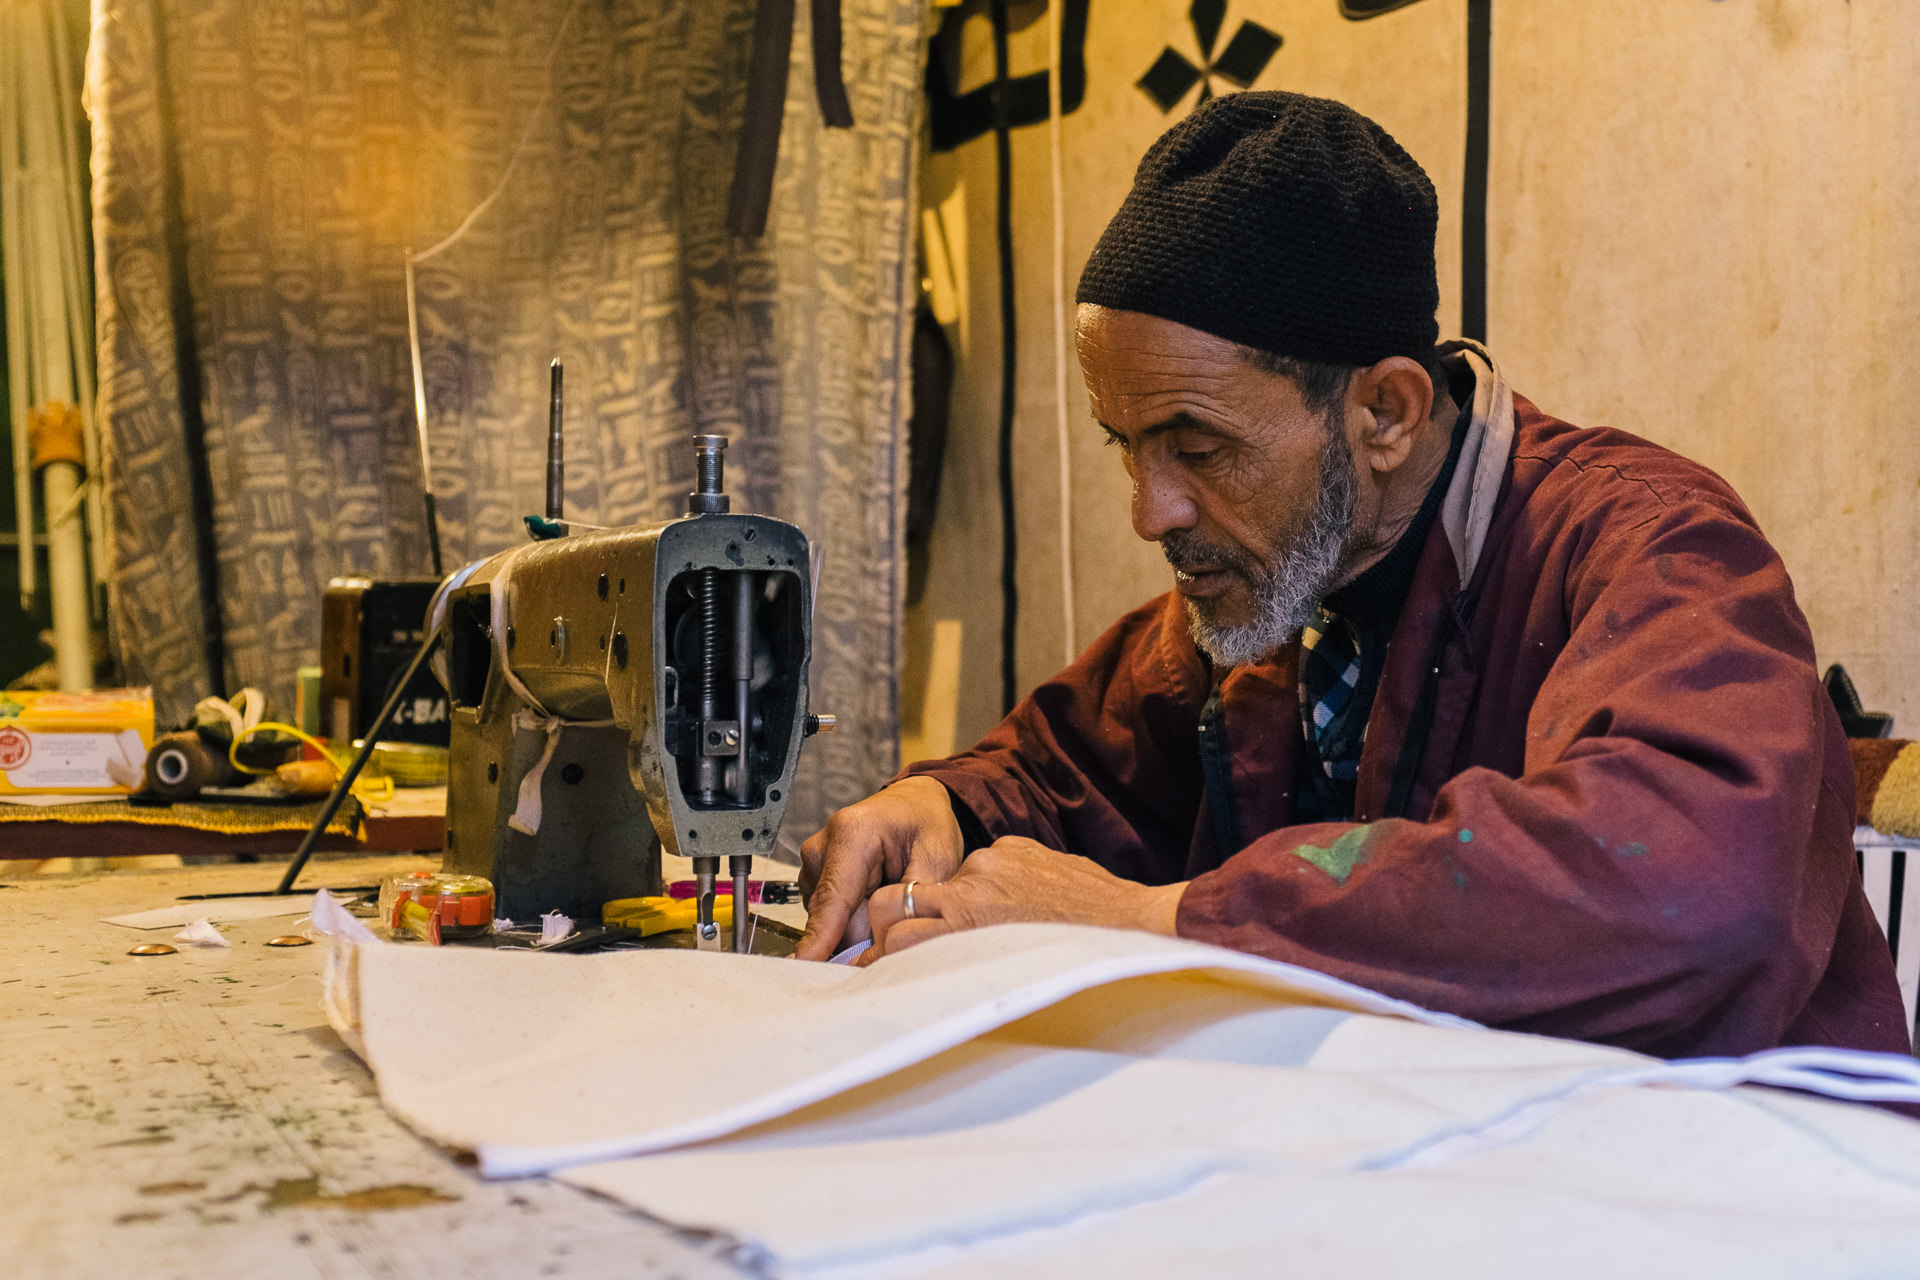 A man sewing a curtain